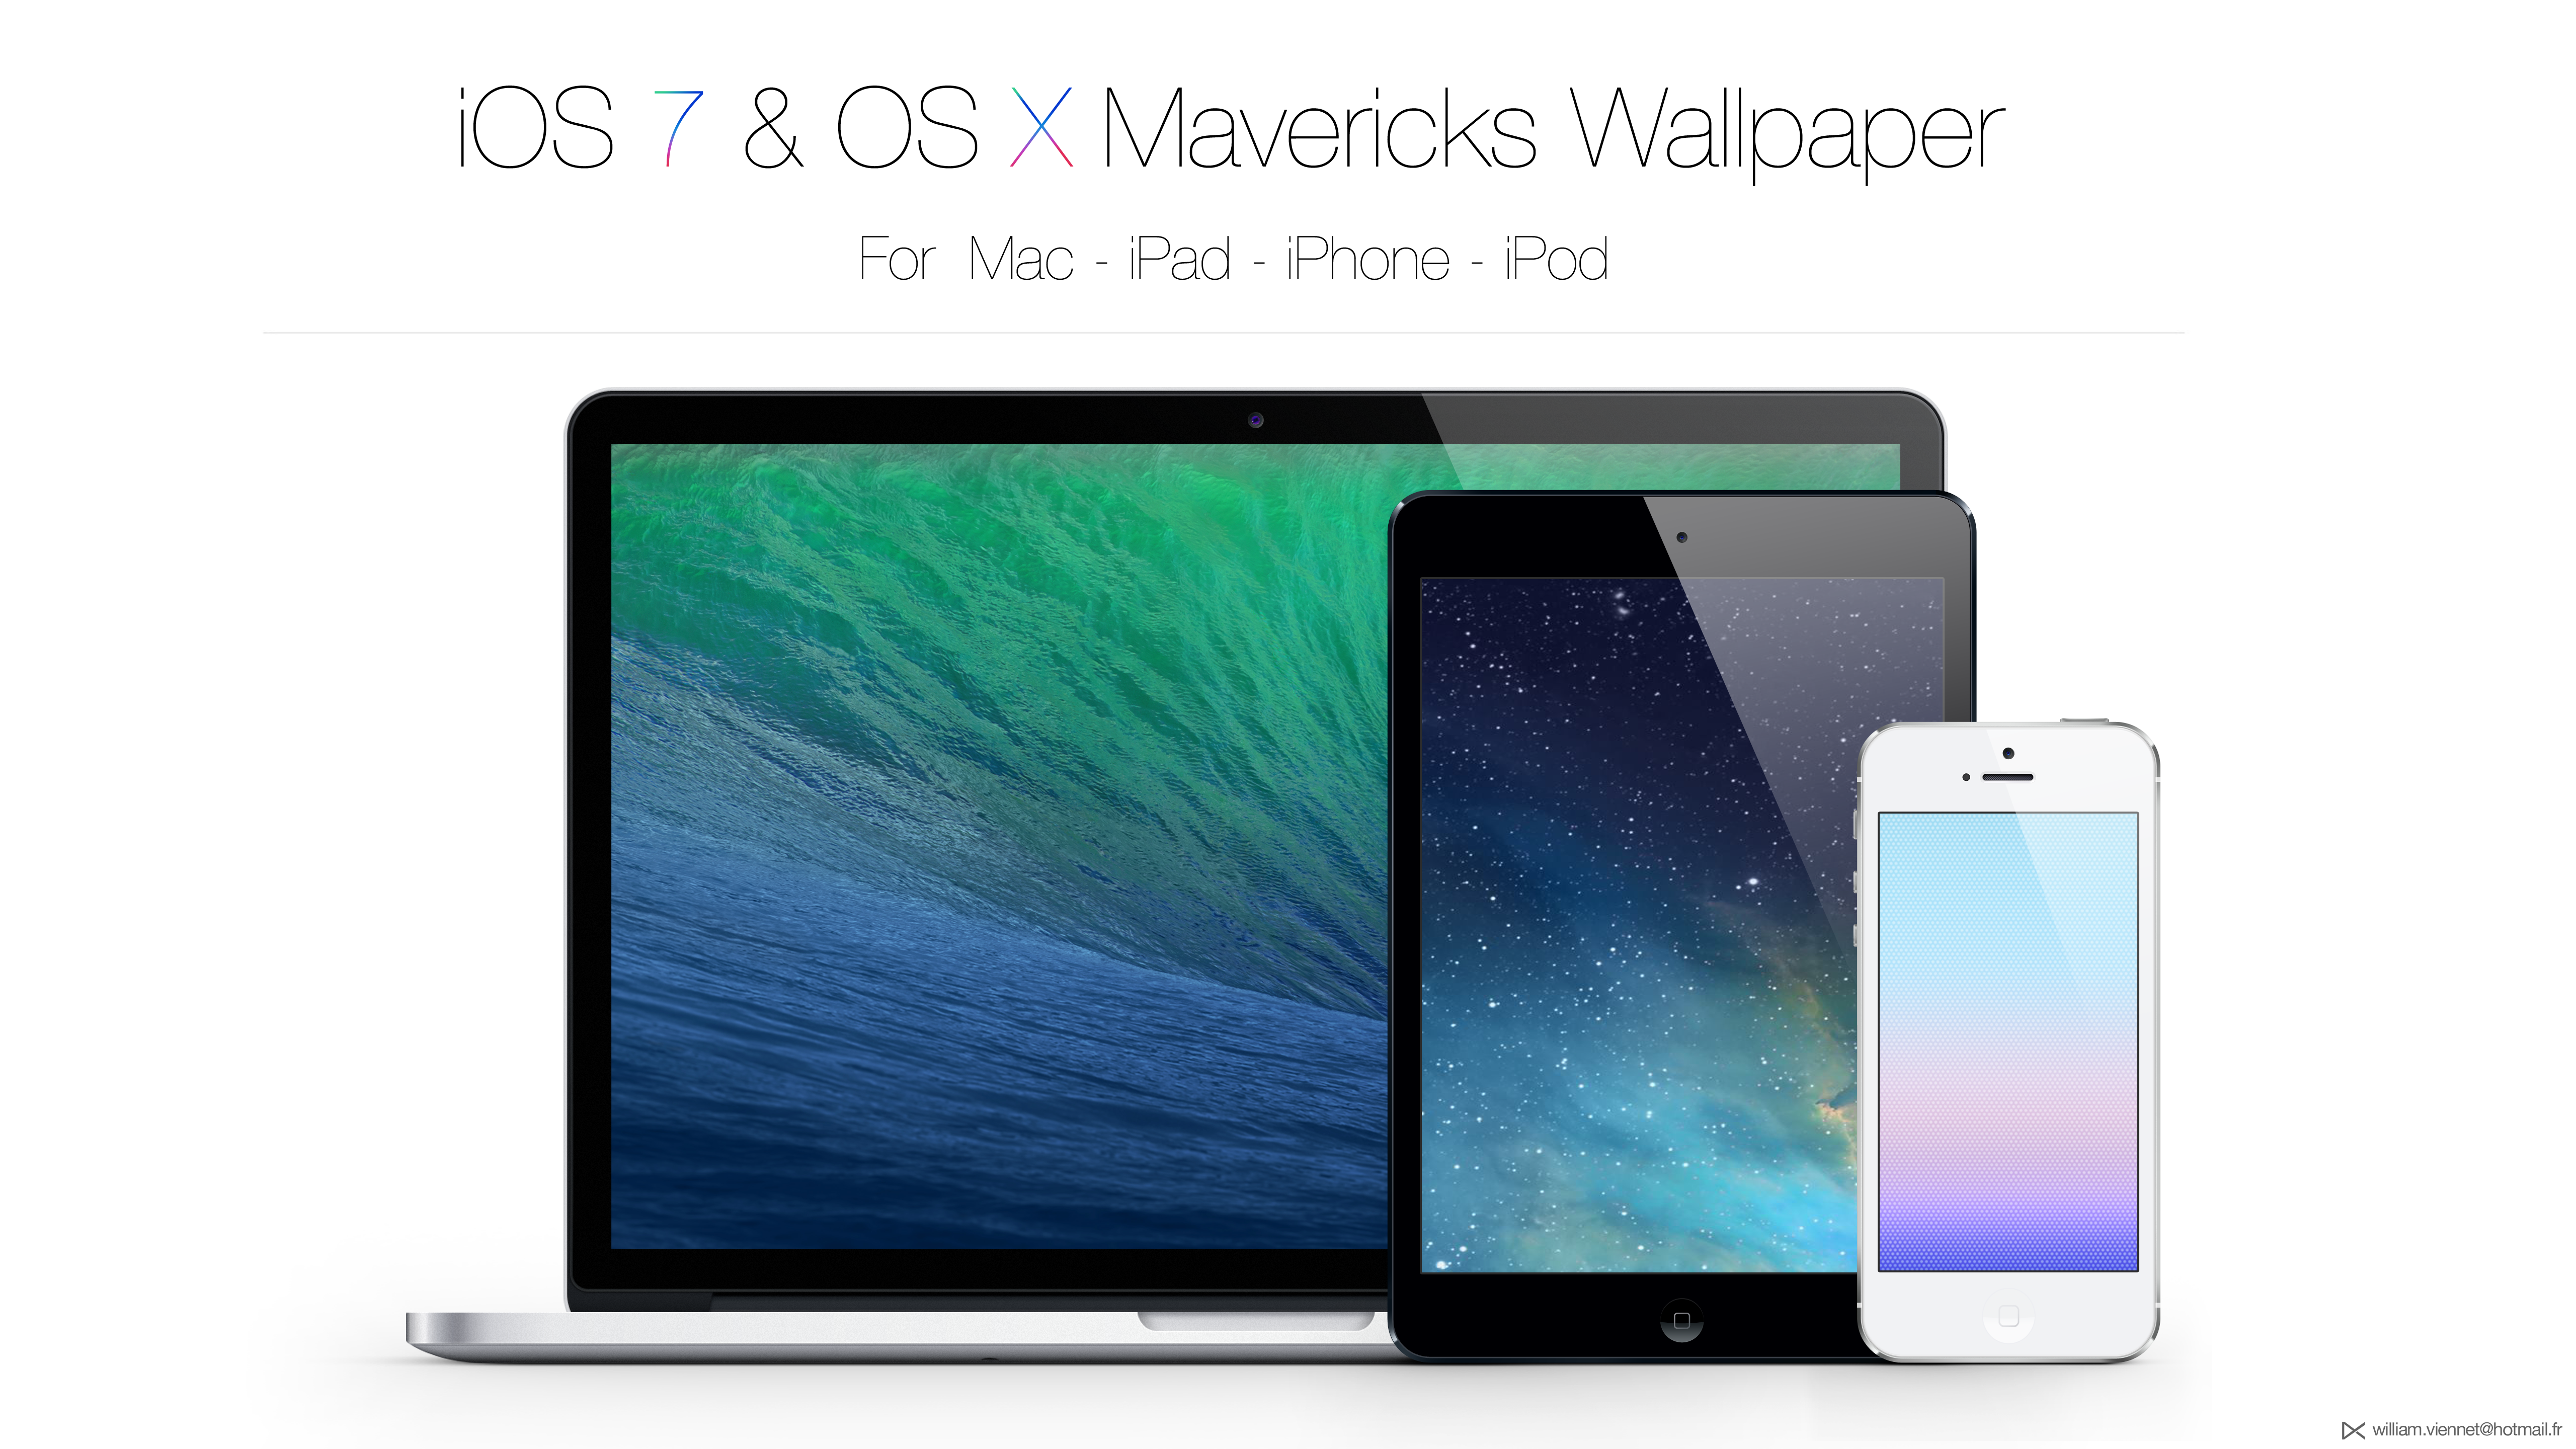 iOS 7 / OS X Mavericks Wallpaper by WillViennet